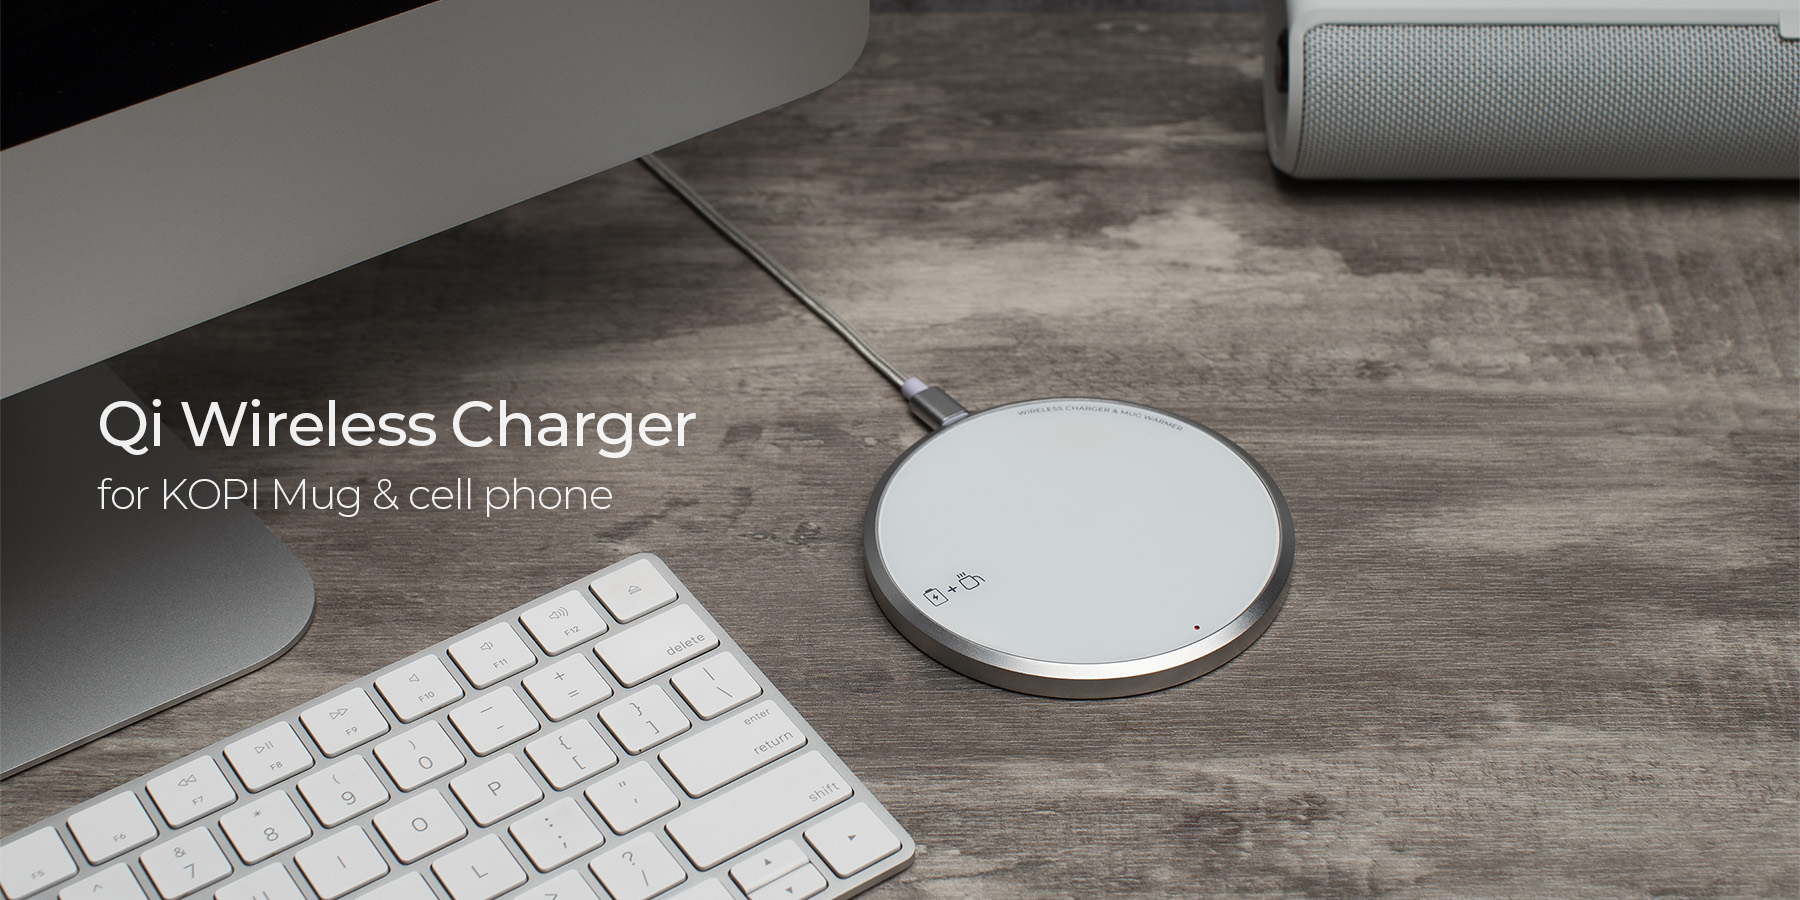 Charger White Computer.jpg